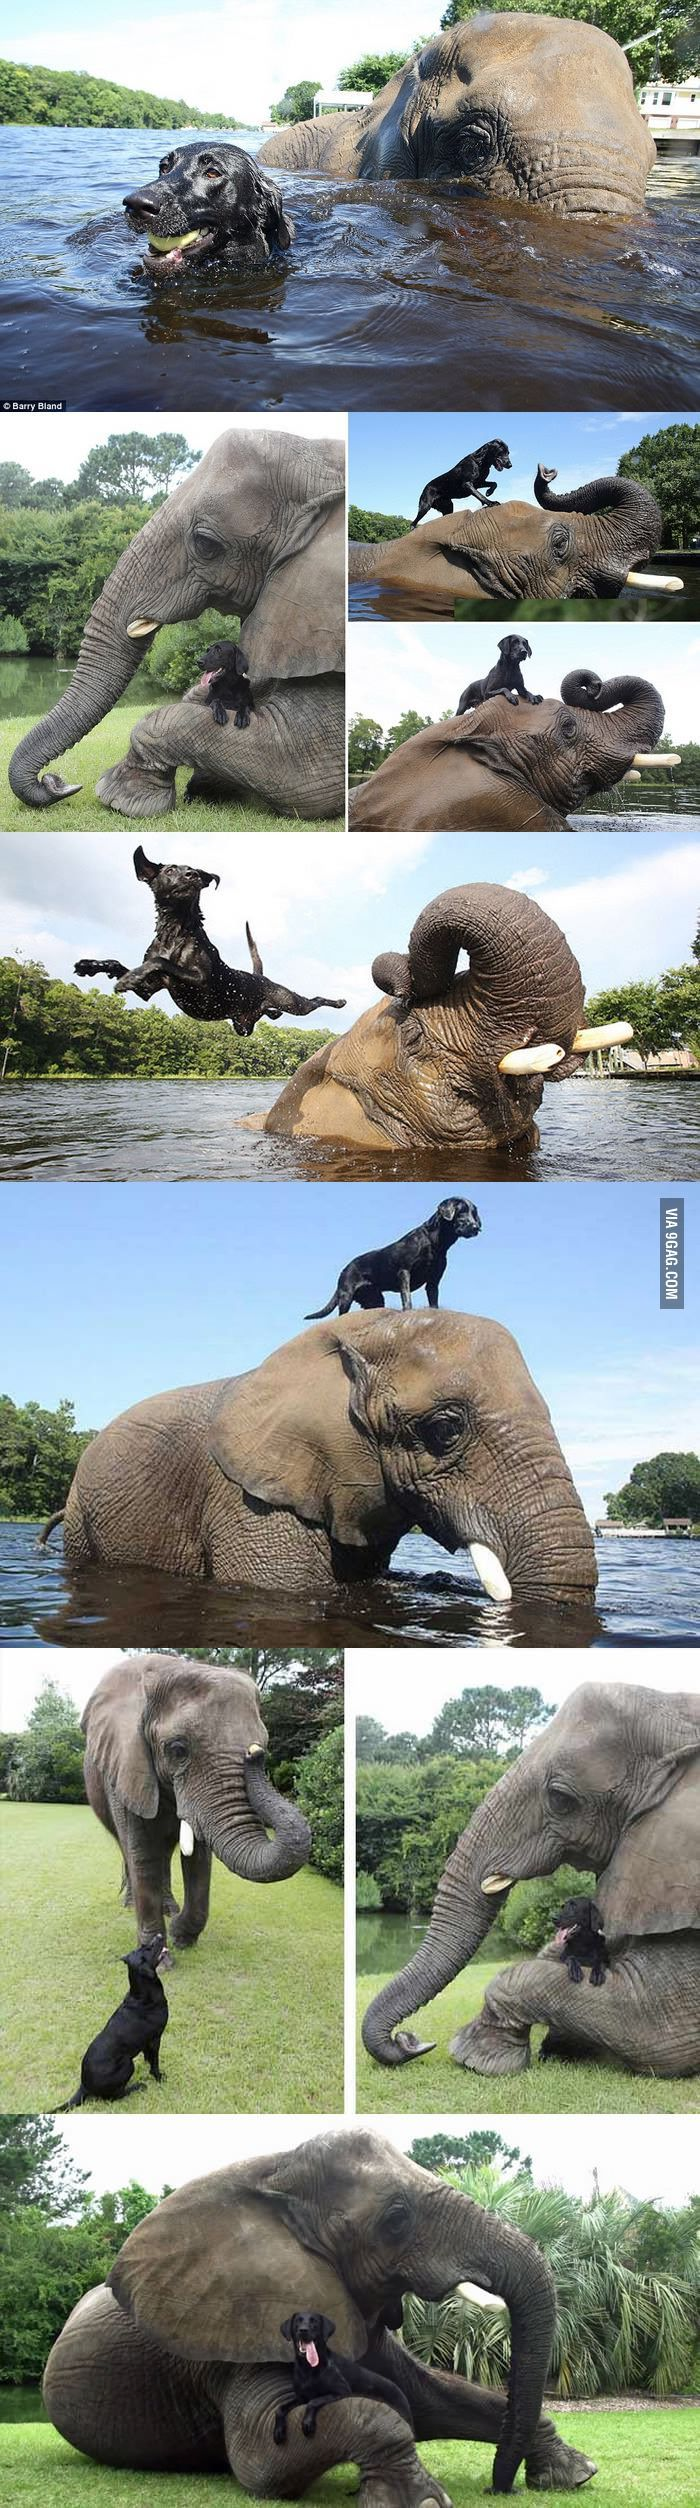 best animals and their stories images on pinterest adorable